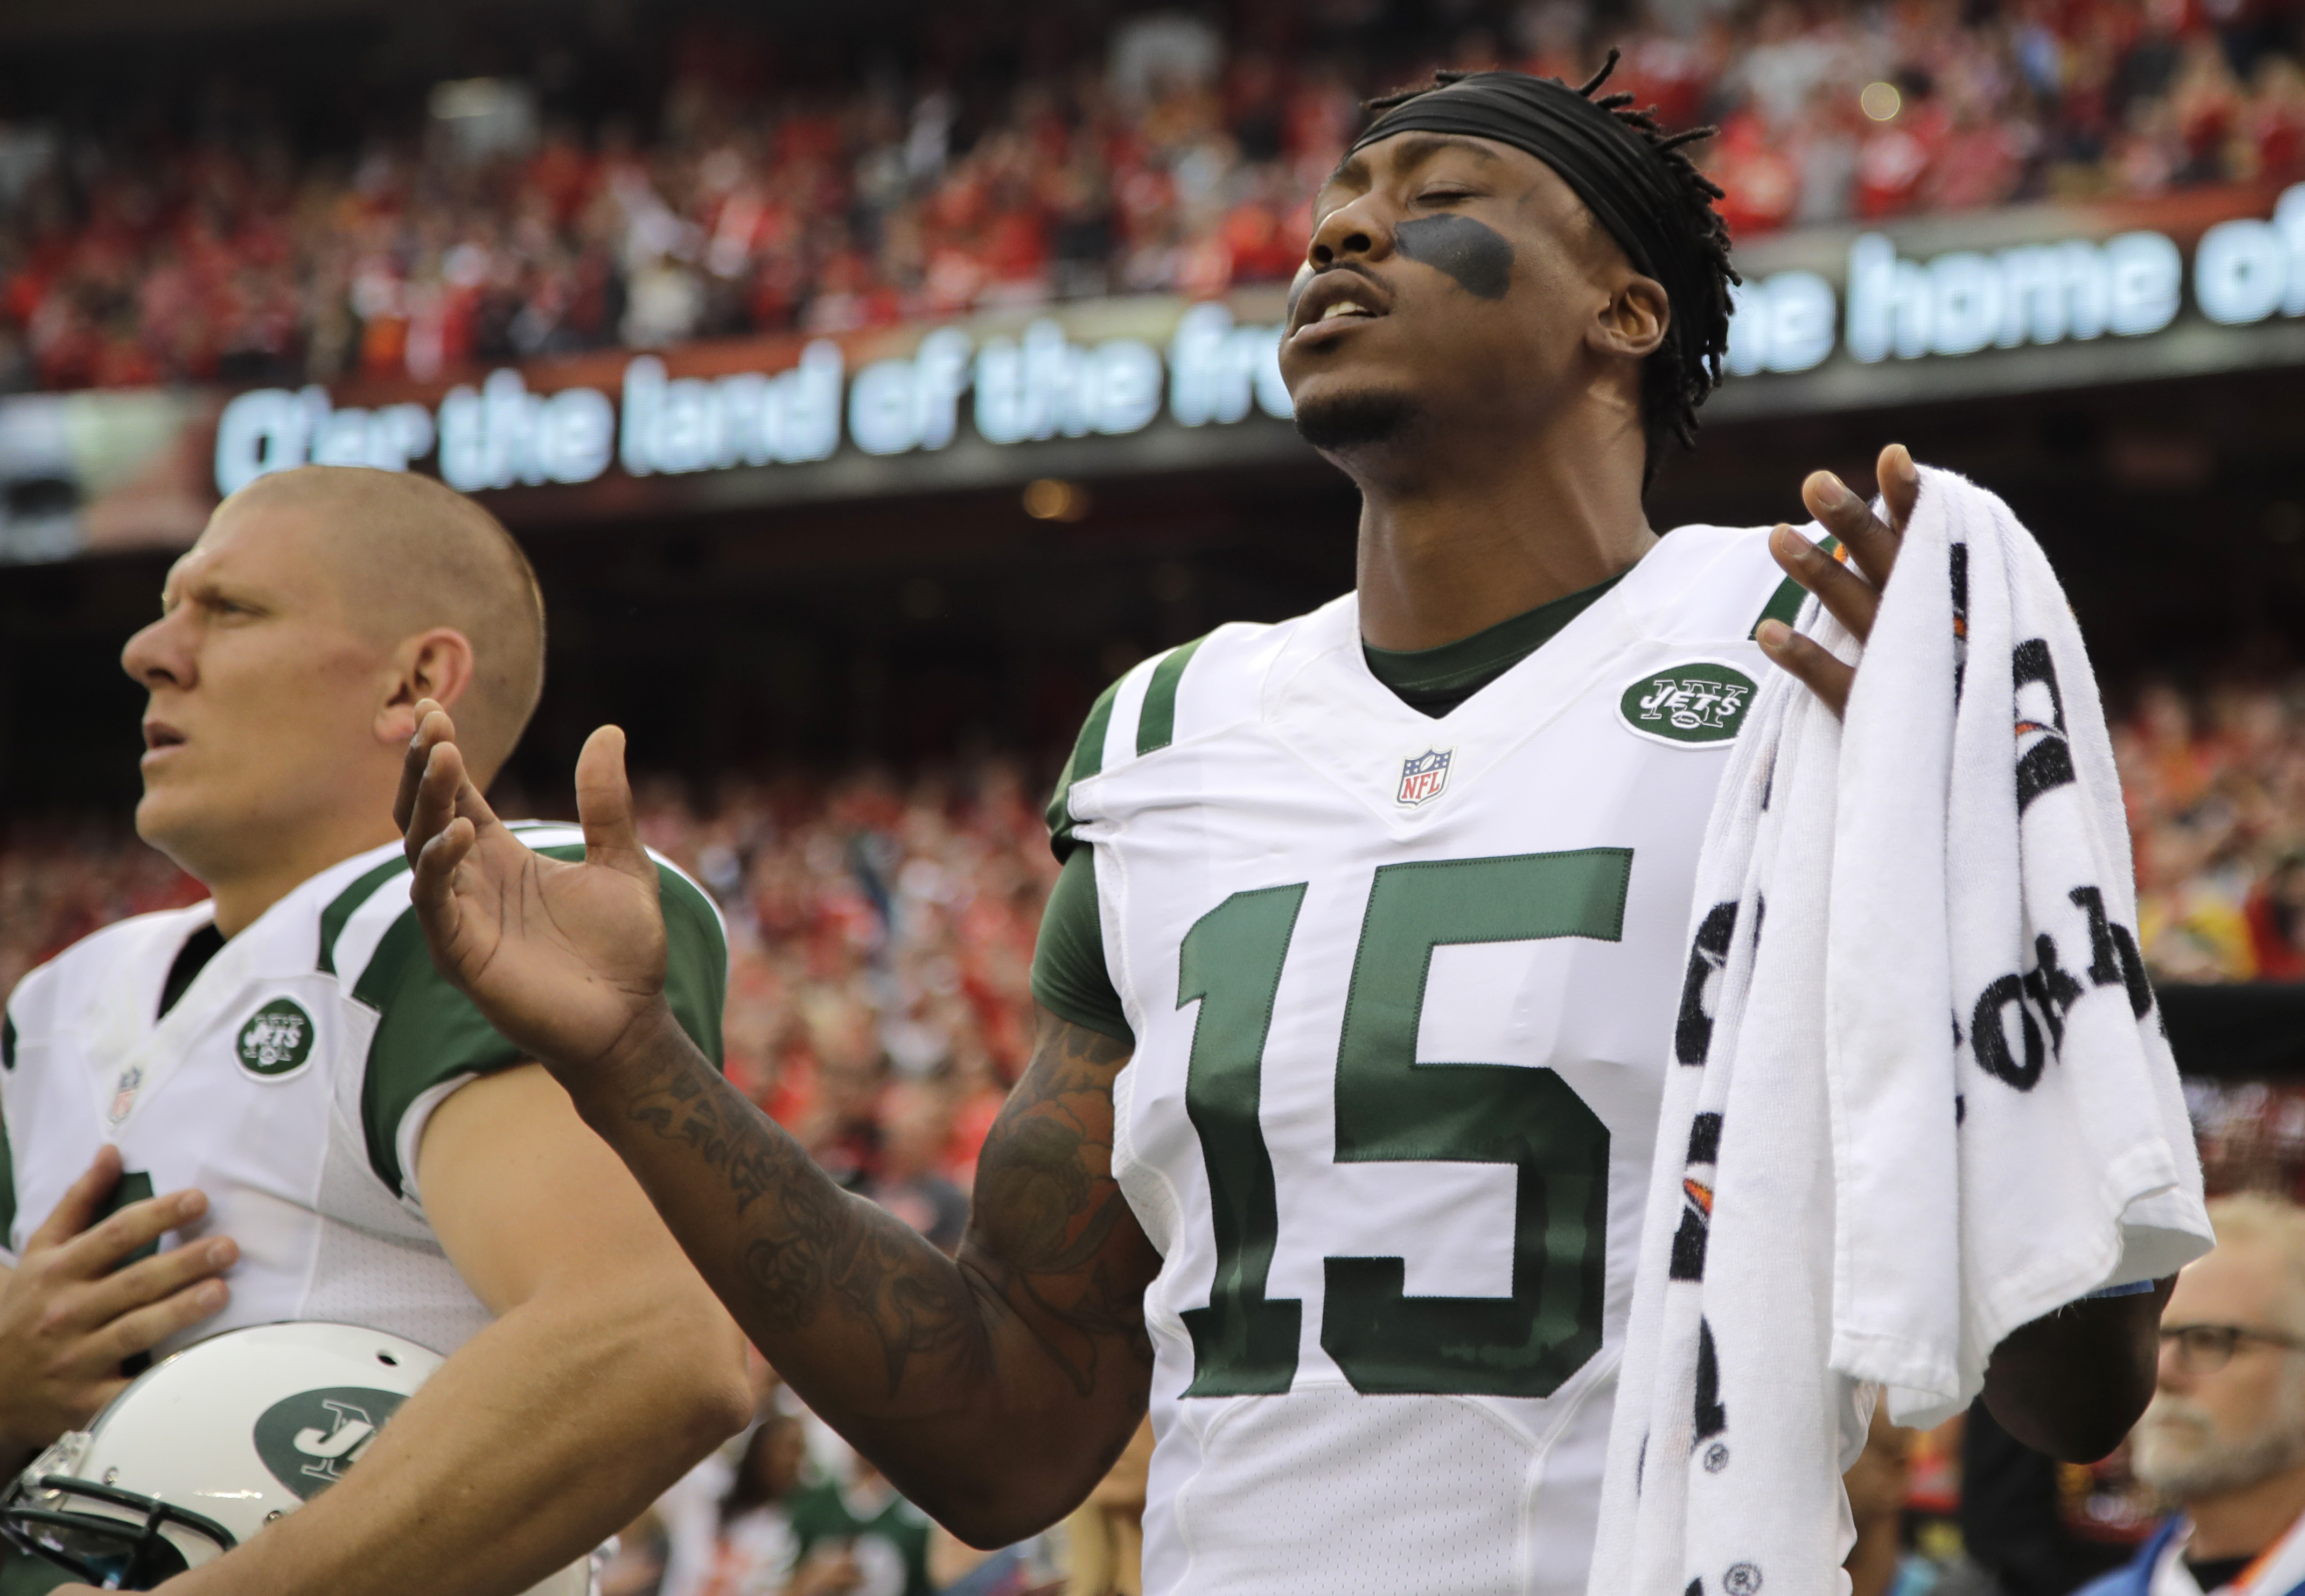 FILE - In this Sept.; 25, 2016, file photo, New York Jets wide receiver Brandon Marshall (15) gestures during the playing of the national anthem before an NFL football game against the Kansas City Chiefs,  in Kansas City, Mo. The cornerstones are crumblin